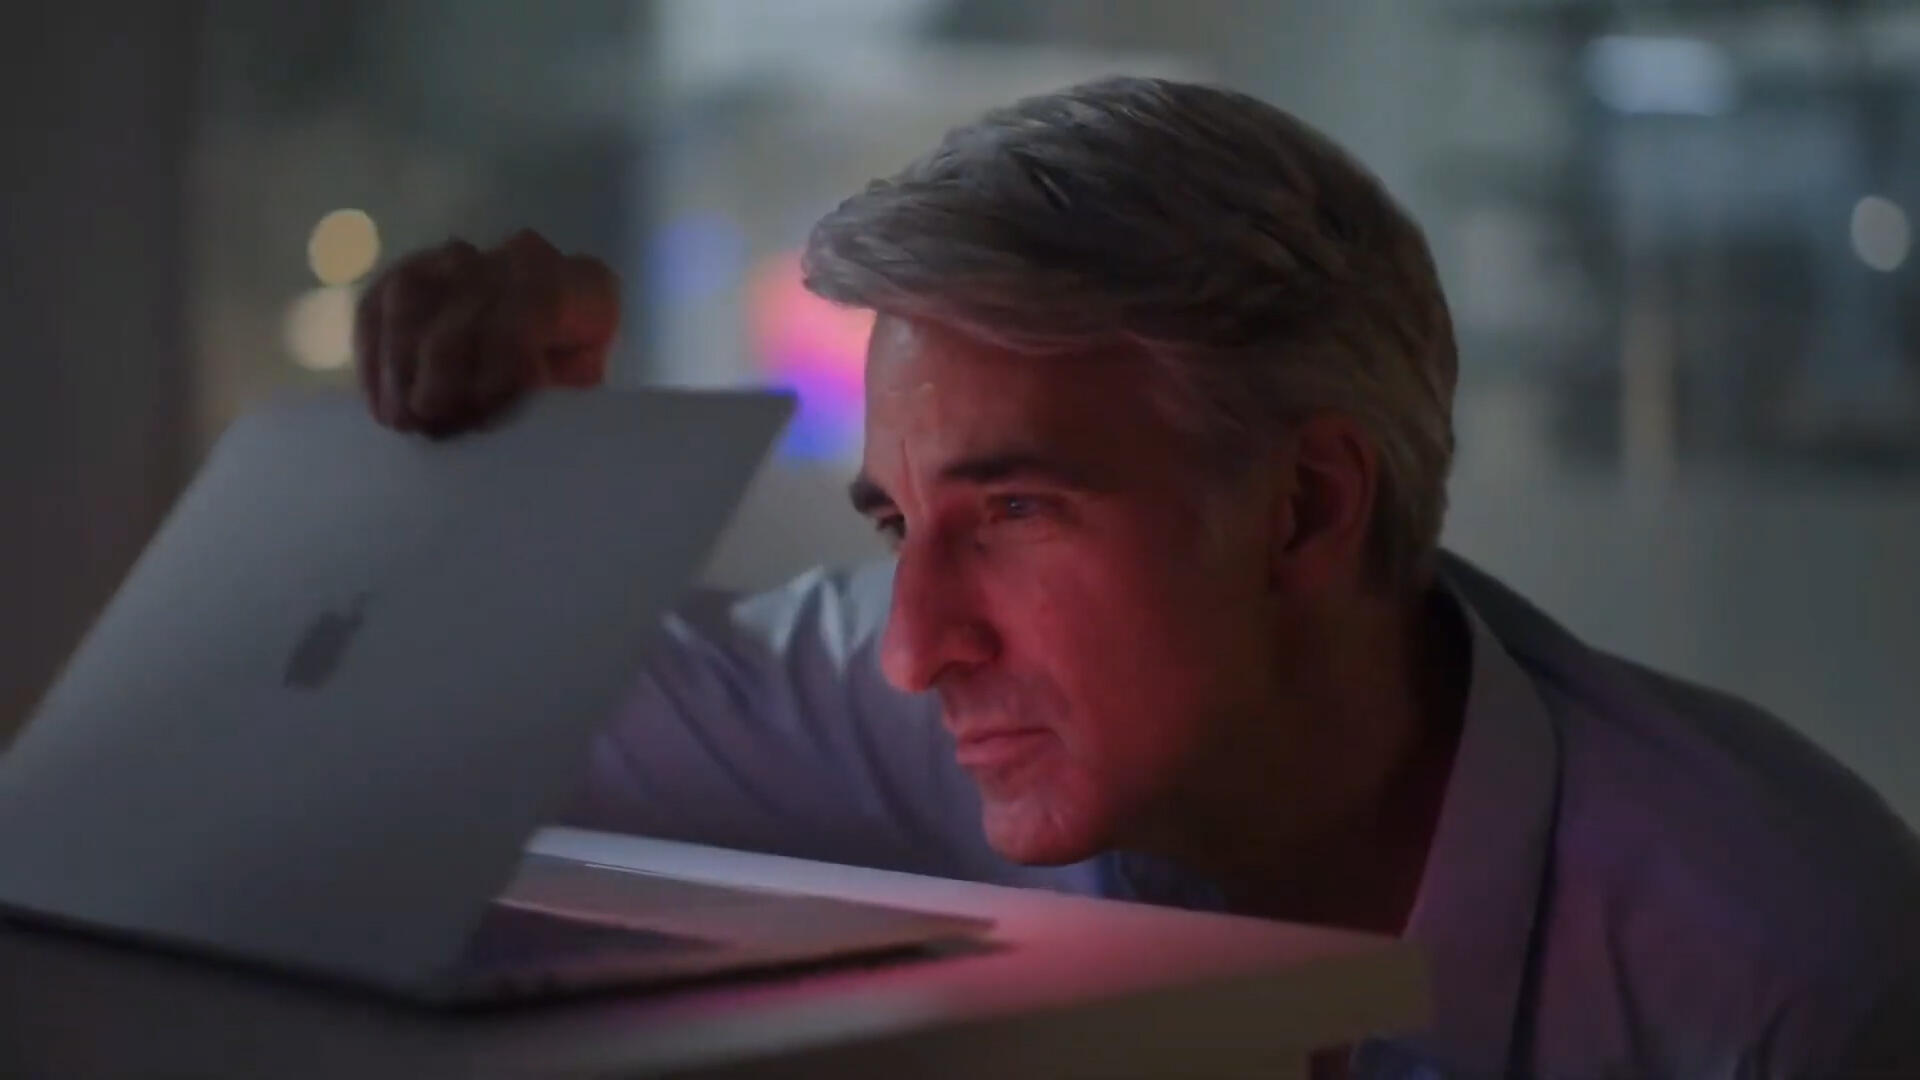 Video: Apple's new M1 chip engineered for MacOS Big Sur